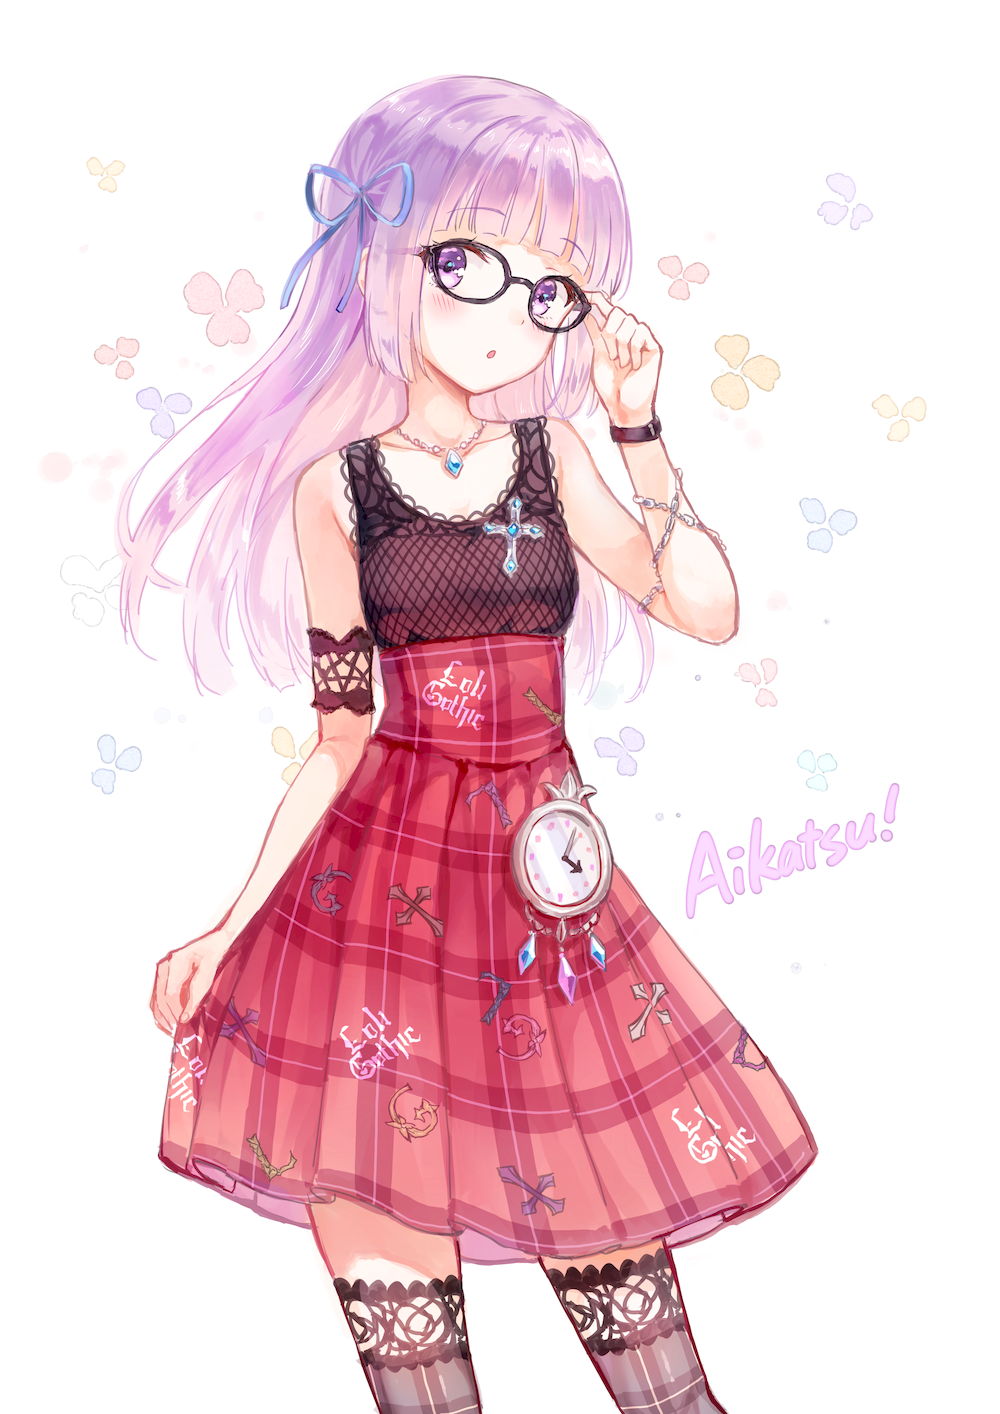 anime girl with purple hair | females | pinterest | anime, girls and